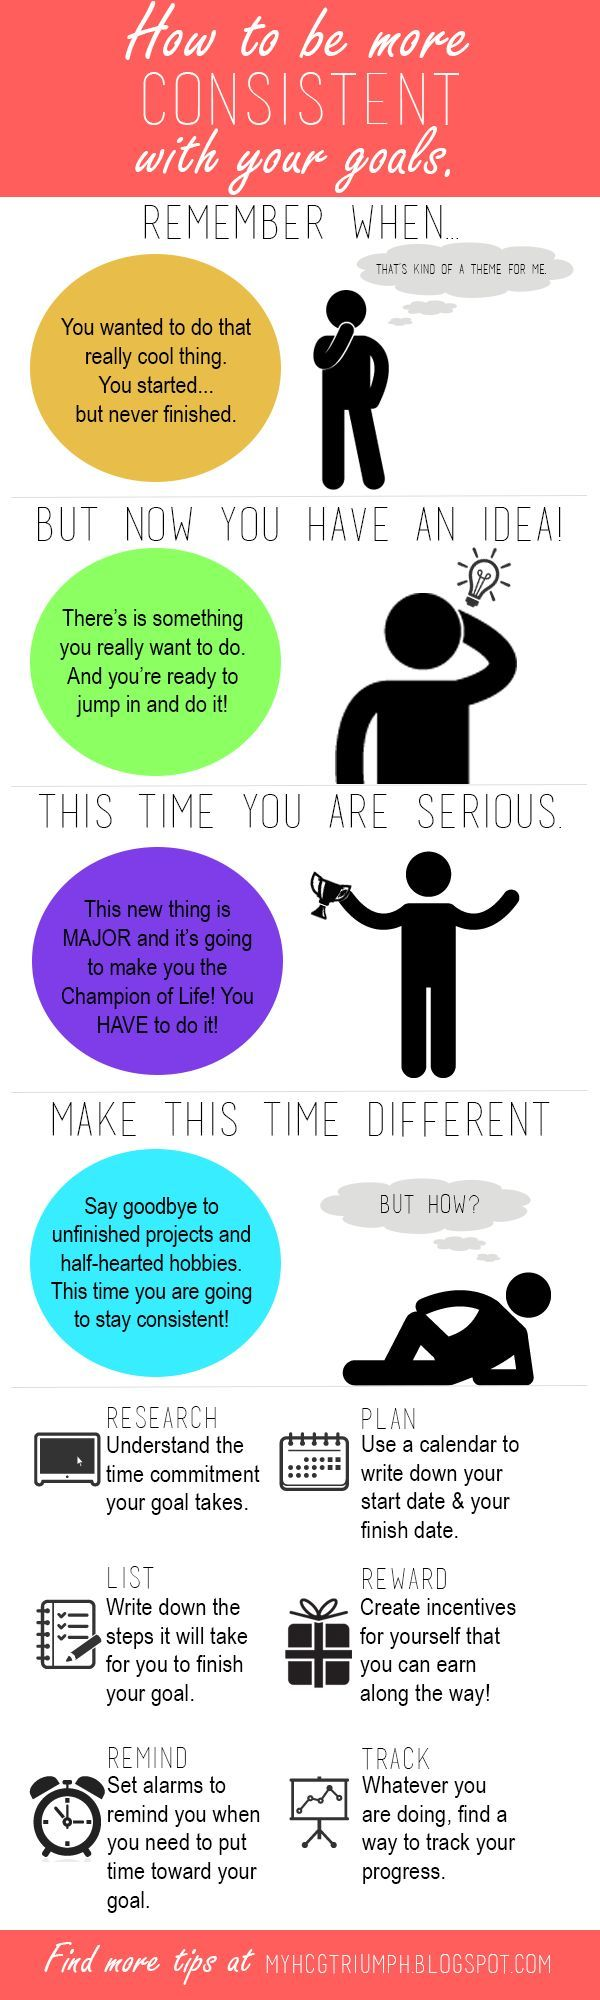 How To Be More Consistent With Your Goals #infographic